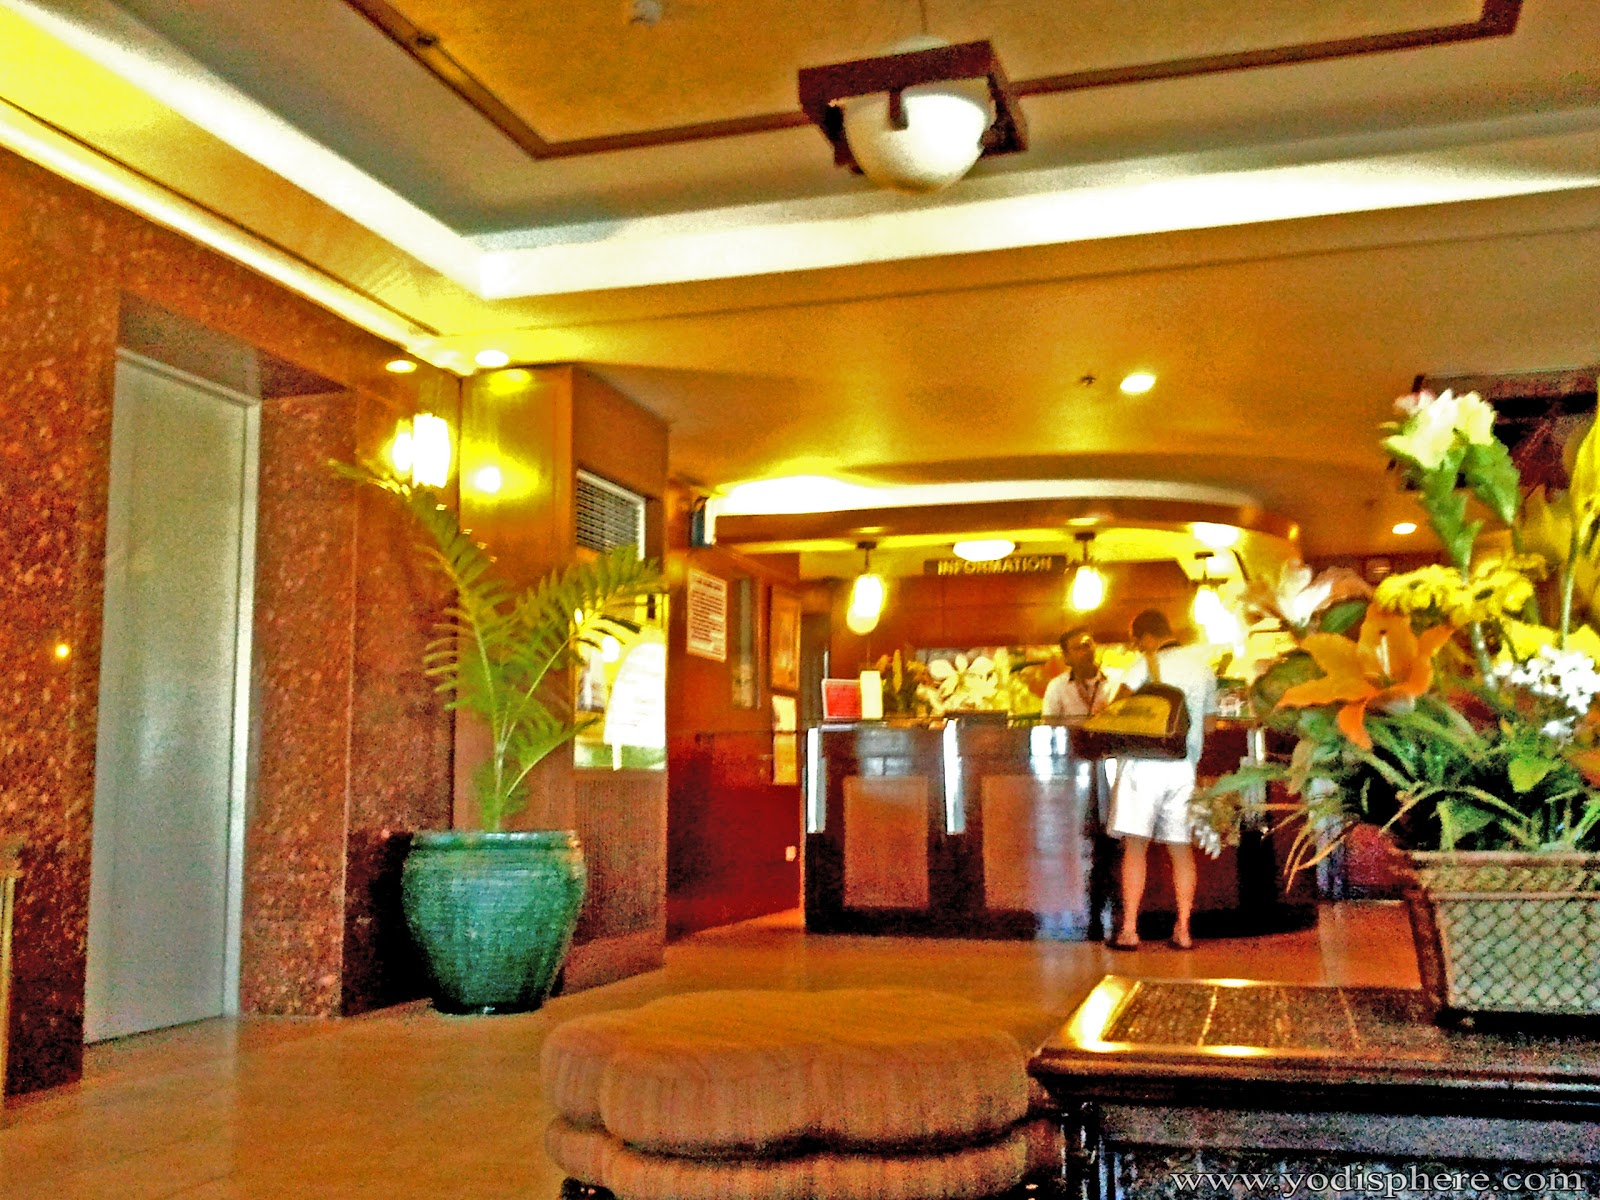 Gv Tower Hotel Cebu City Review Cheap Rates That Will Give You Second Thoughts Yodisphere Com